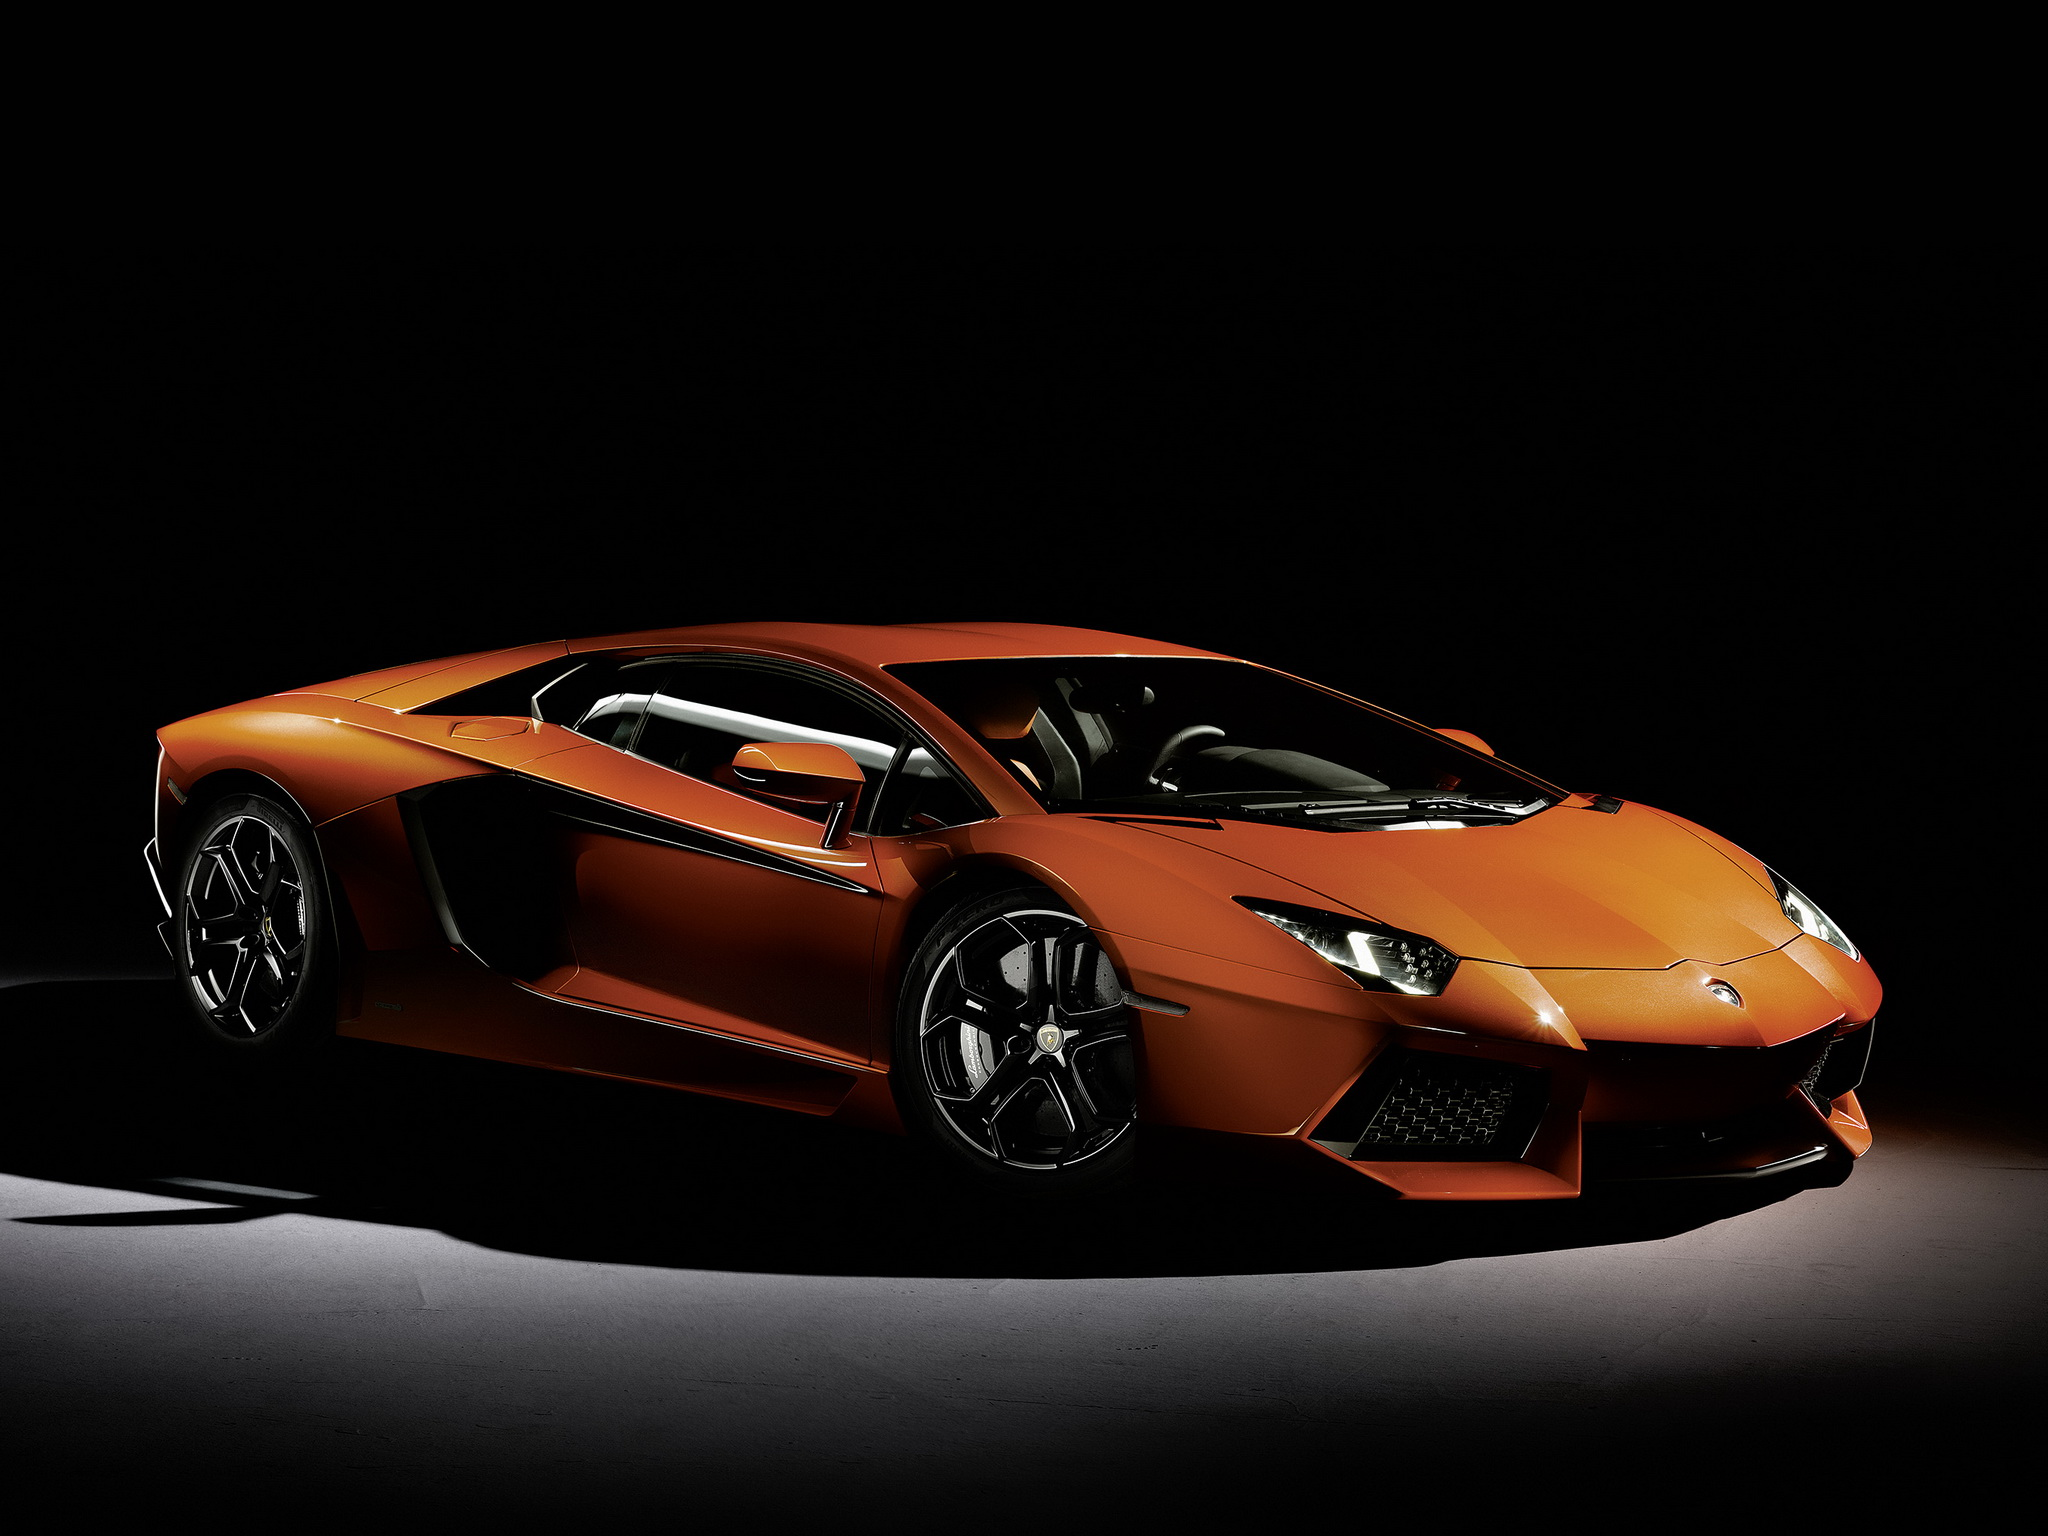 Lamborghini Aventador Night 20481536 130333 HD Wallpaper Res 2048x1536